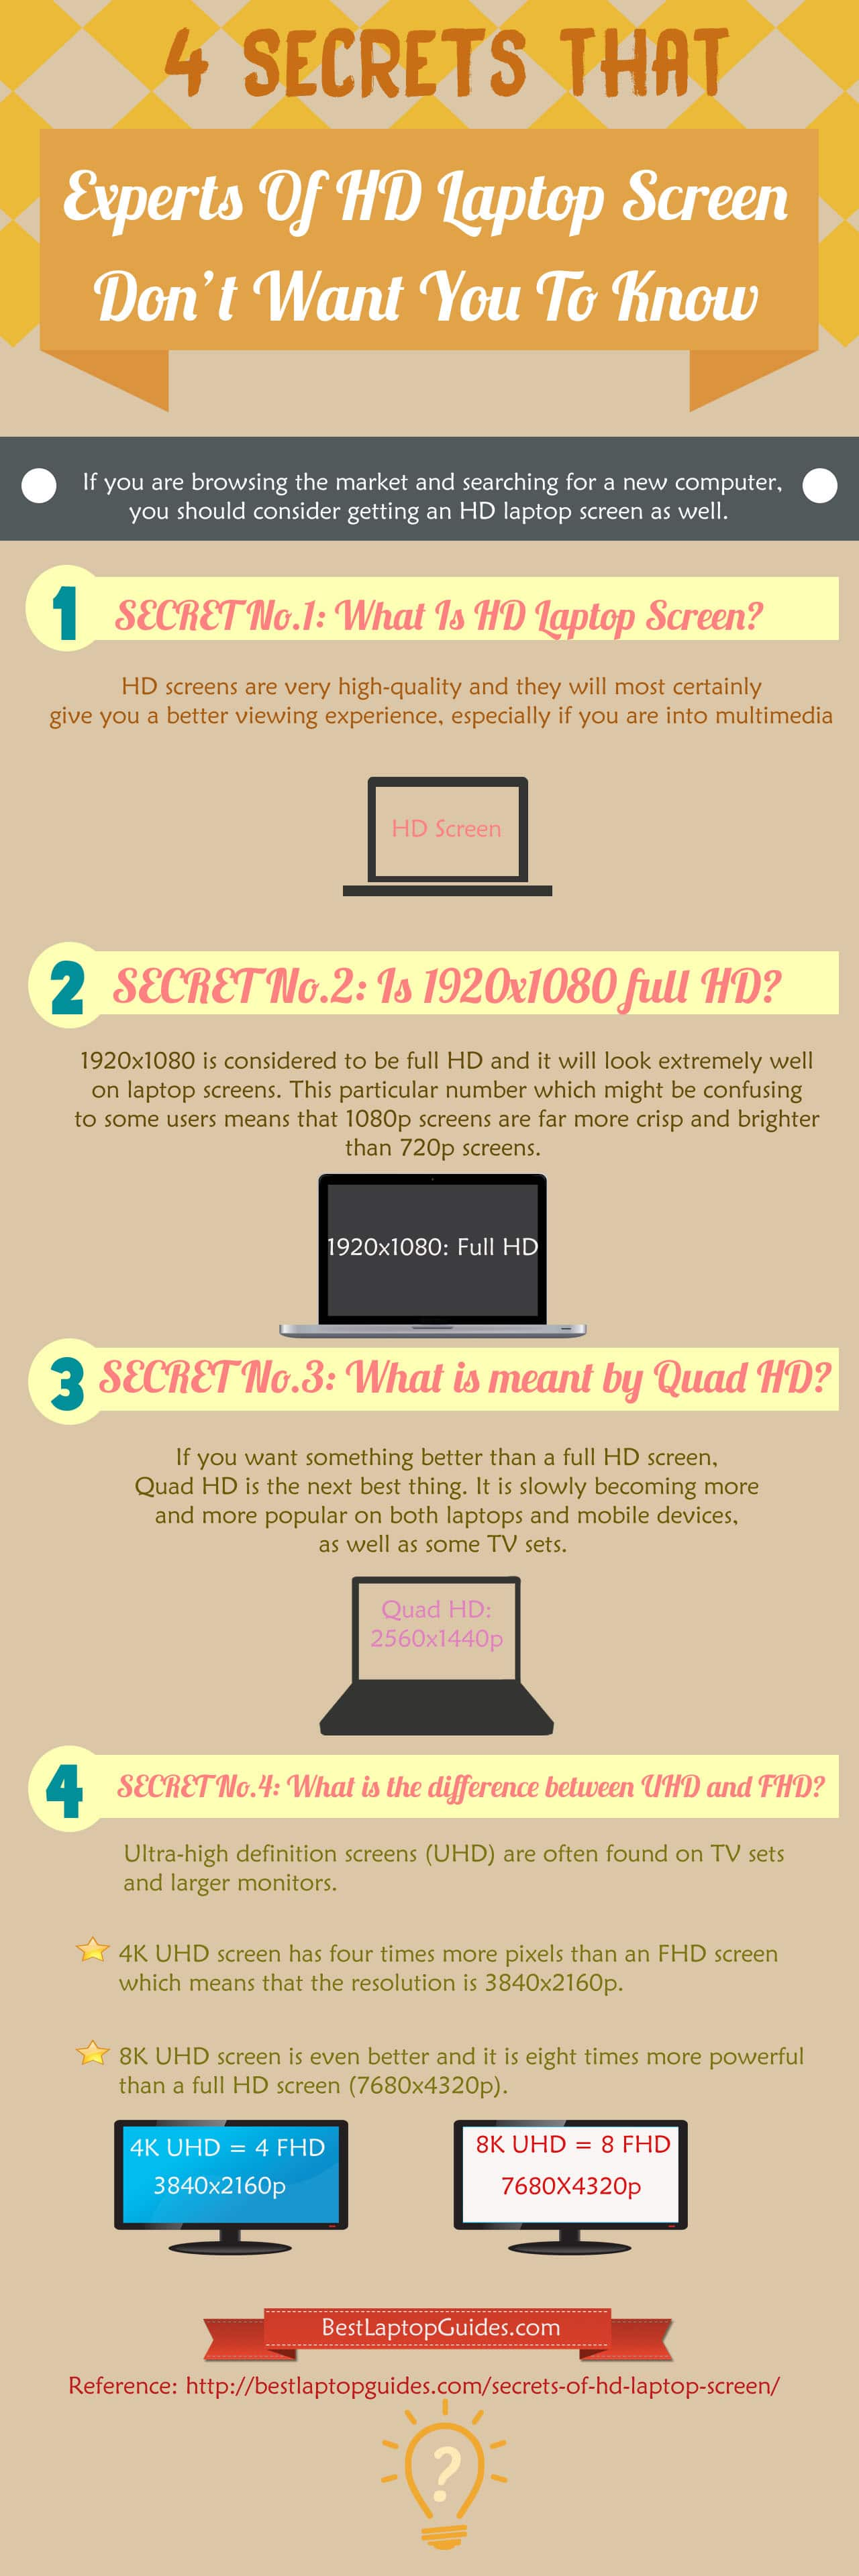 4 secrets of HD laptop screen